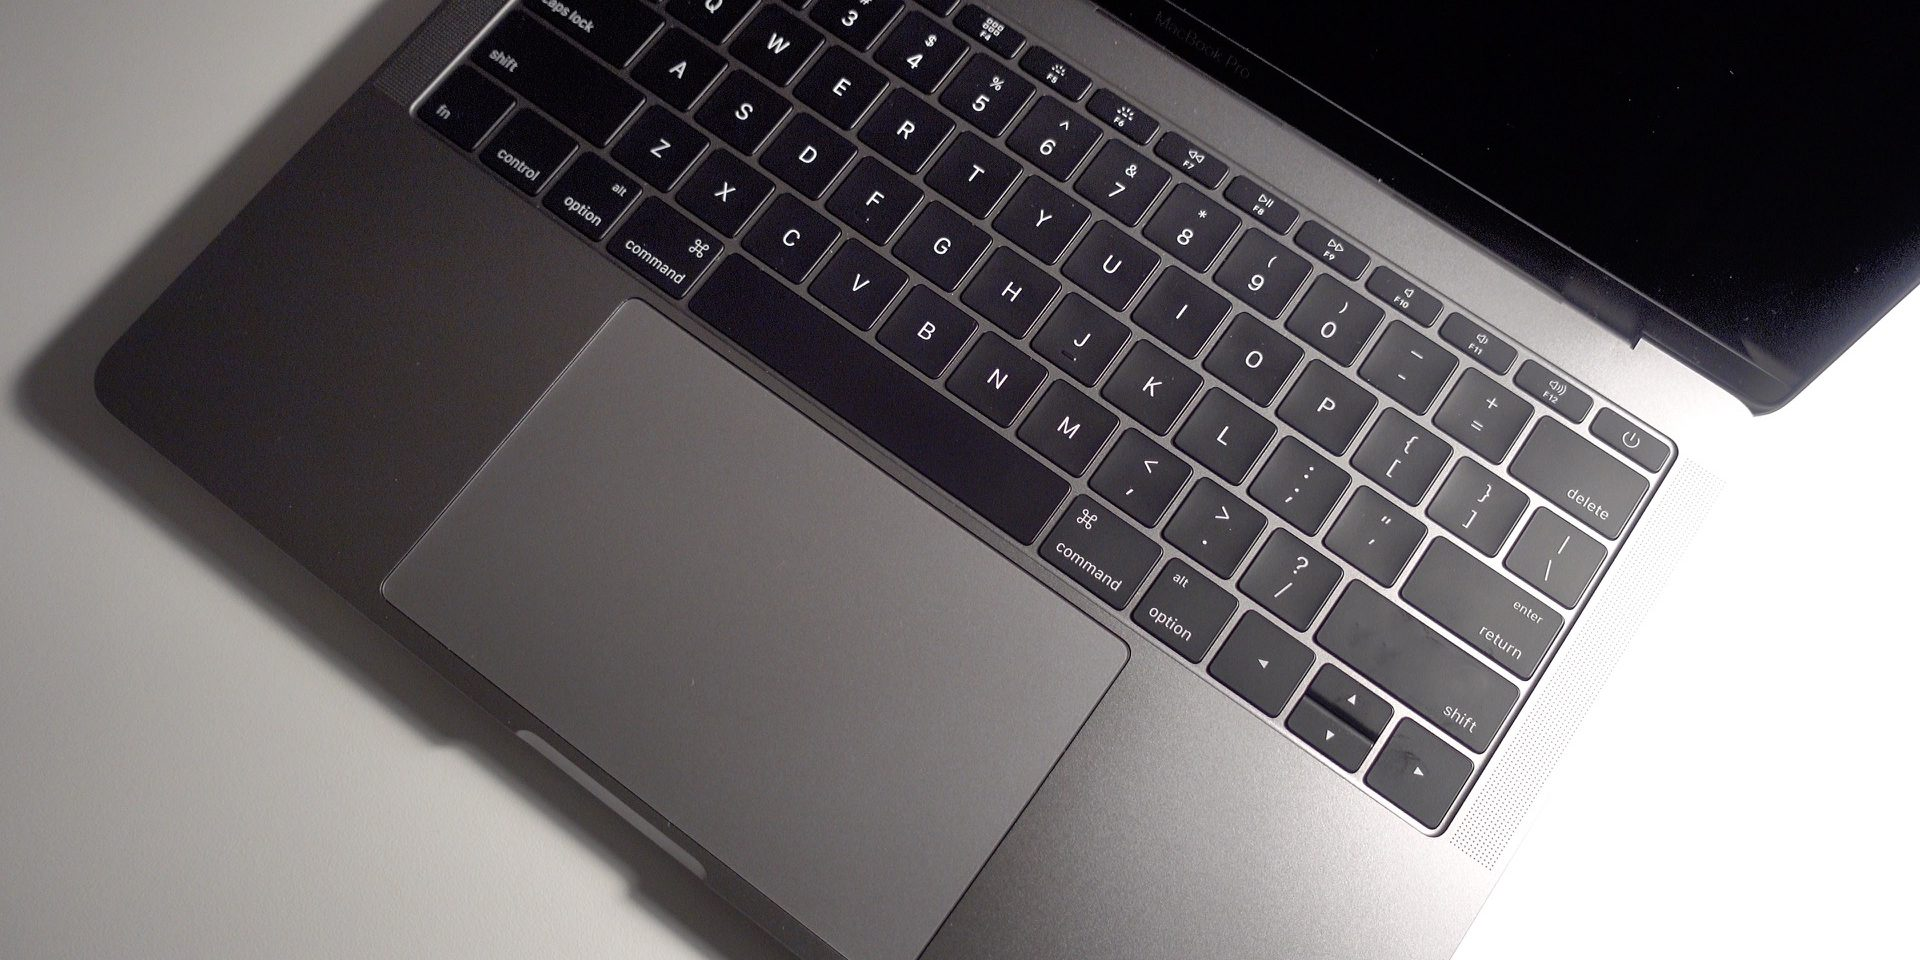 Apple offering battery replacement program for some 13-inch MacBook Pros